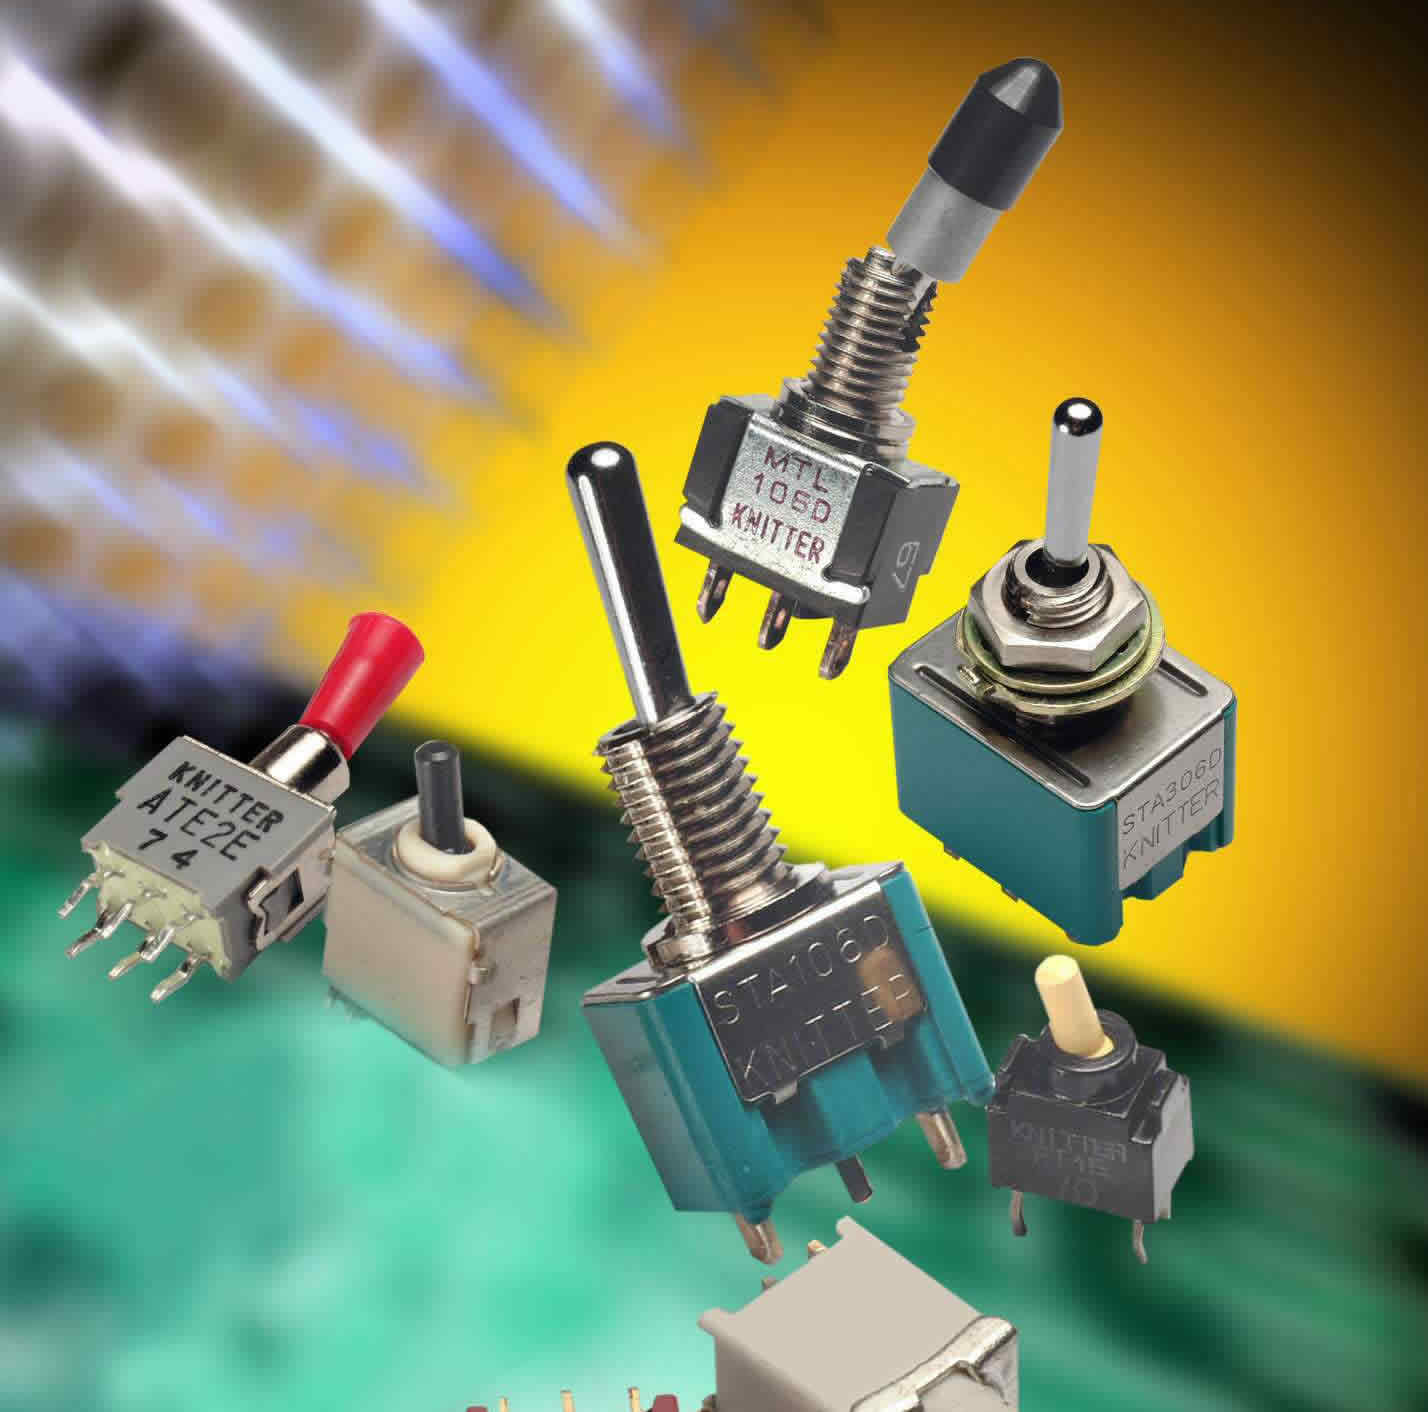 Broad range of toggles switches suit most applications